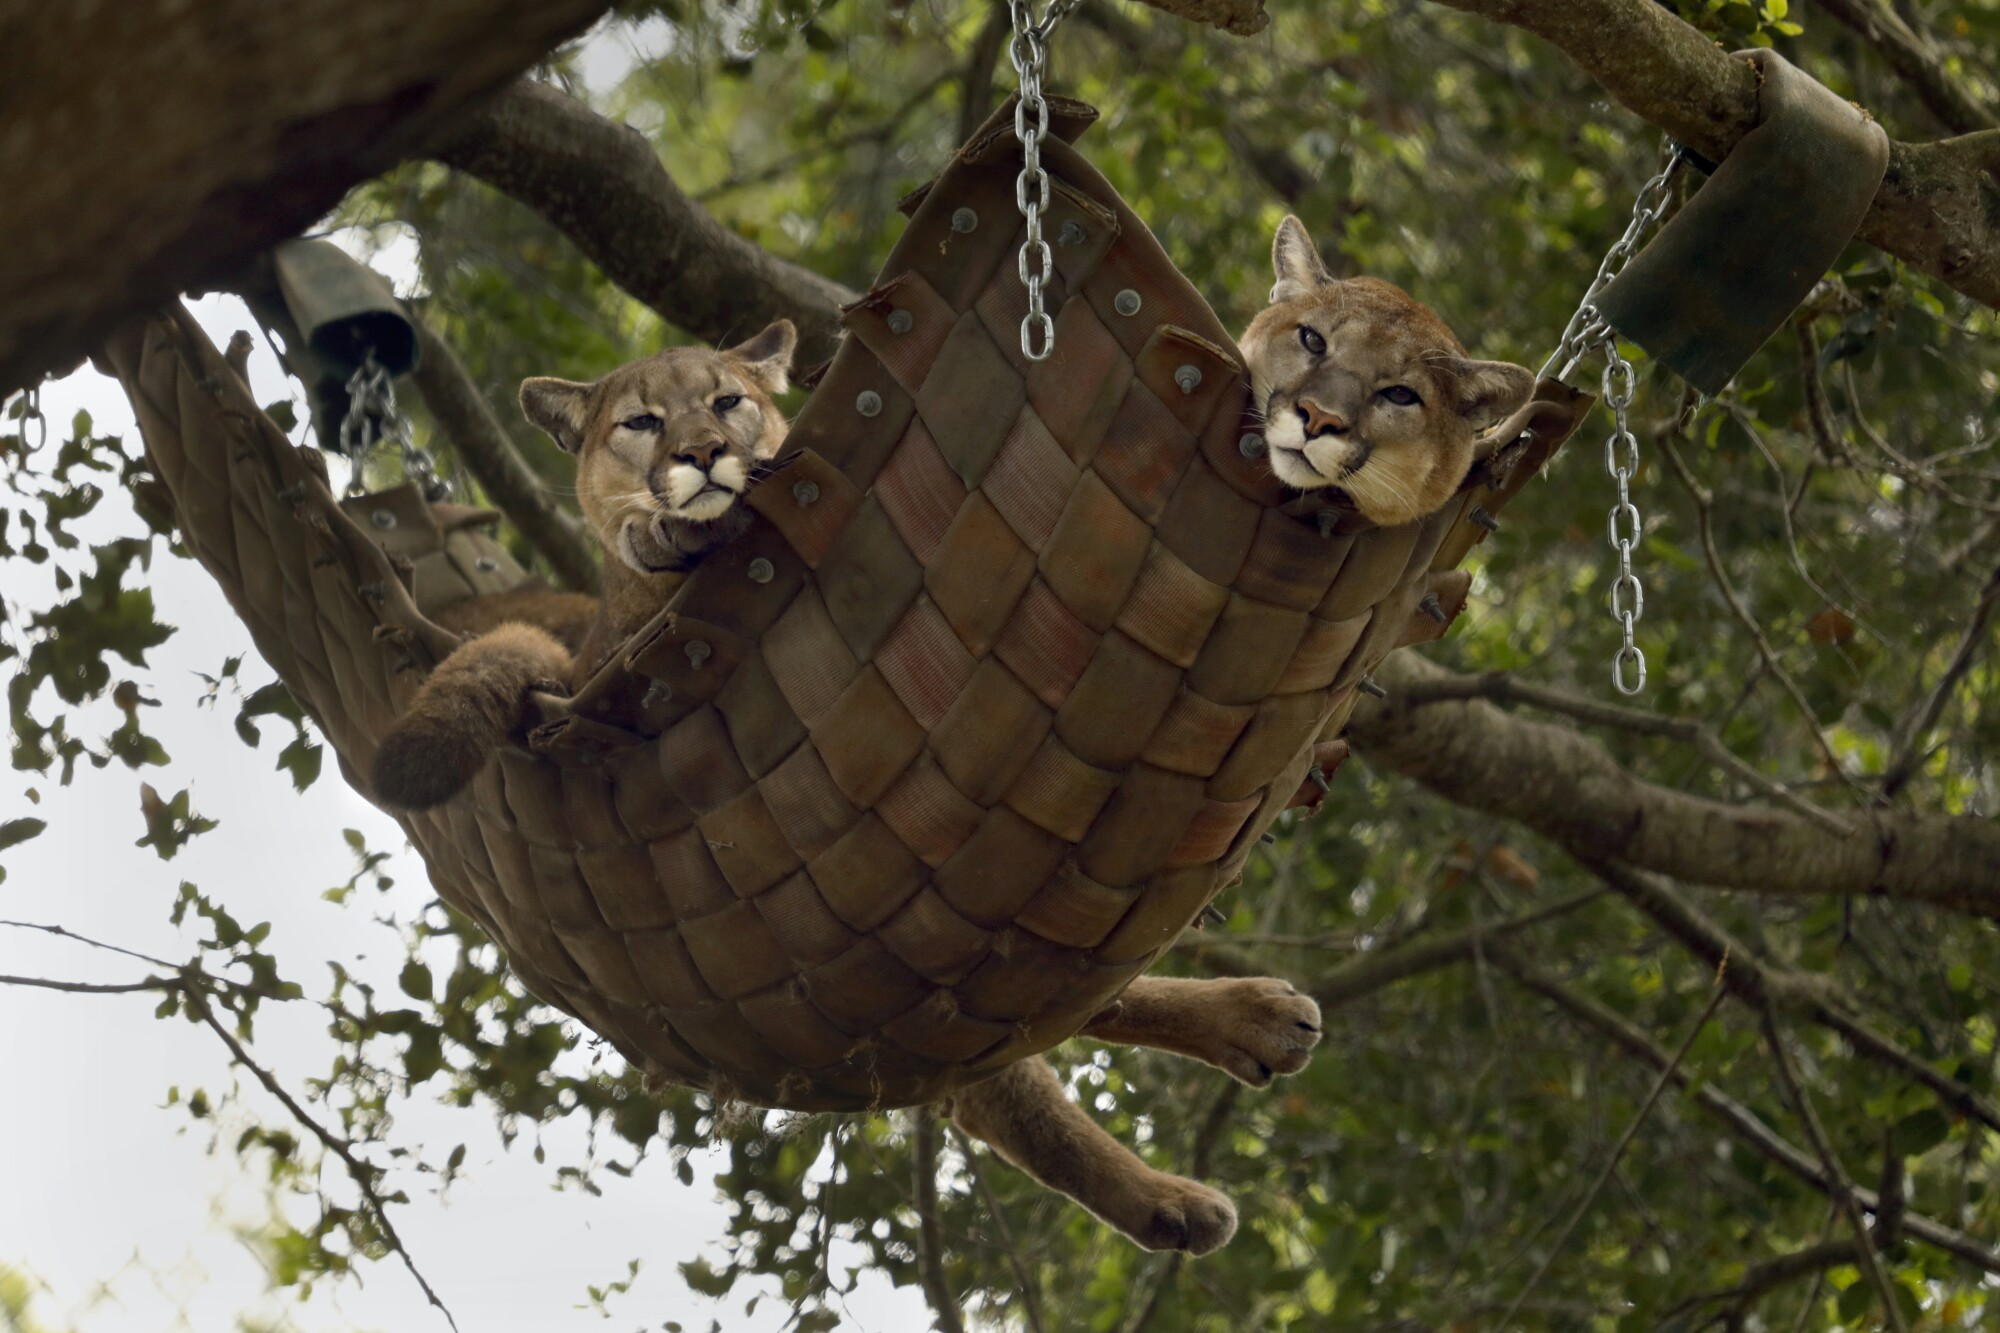 Two mountain lions hang together in a hammock at the Oakland Zoo